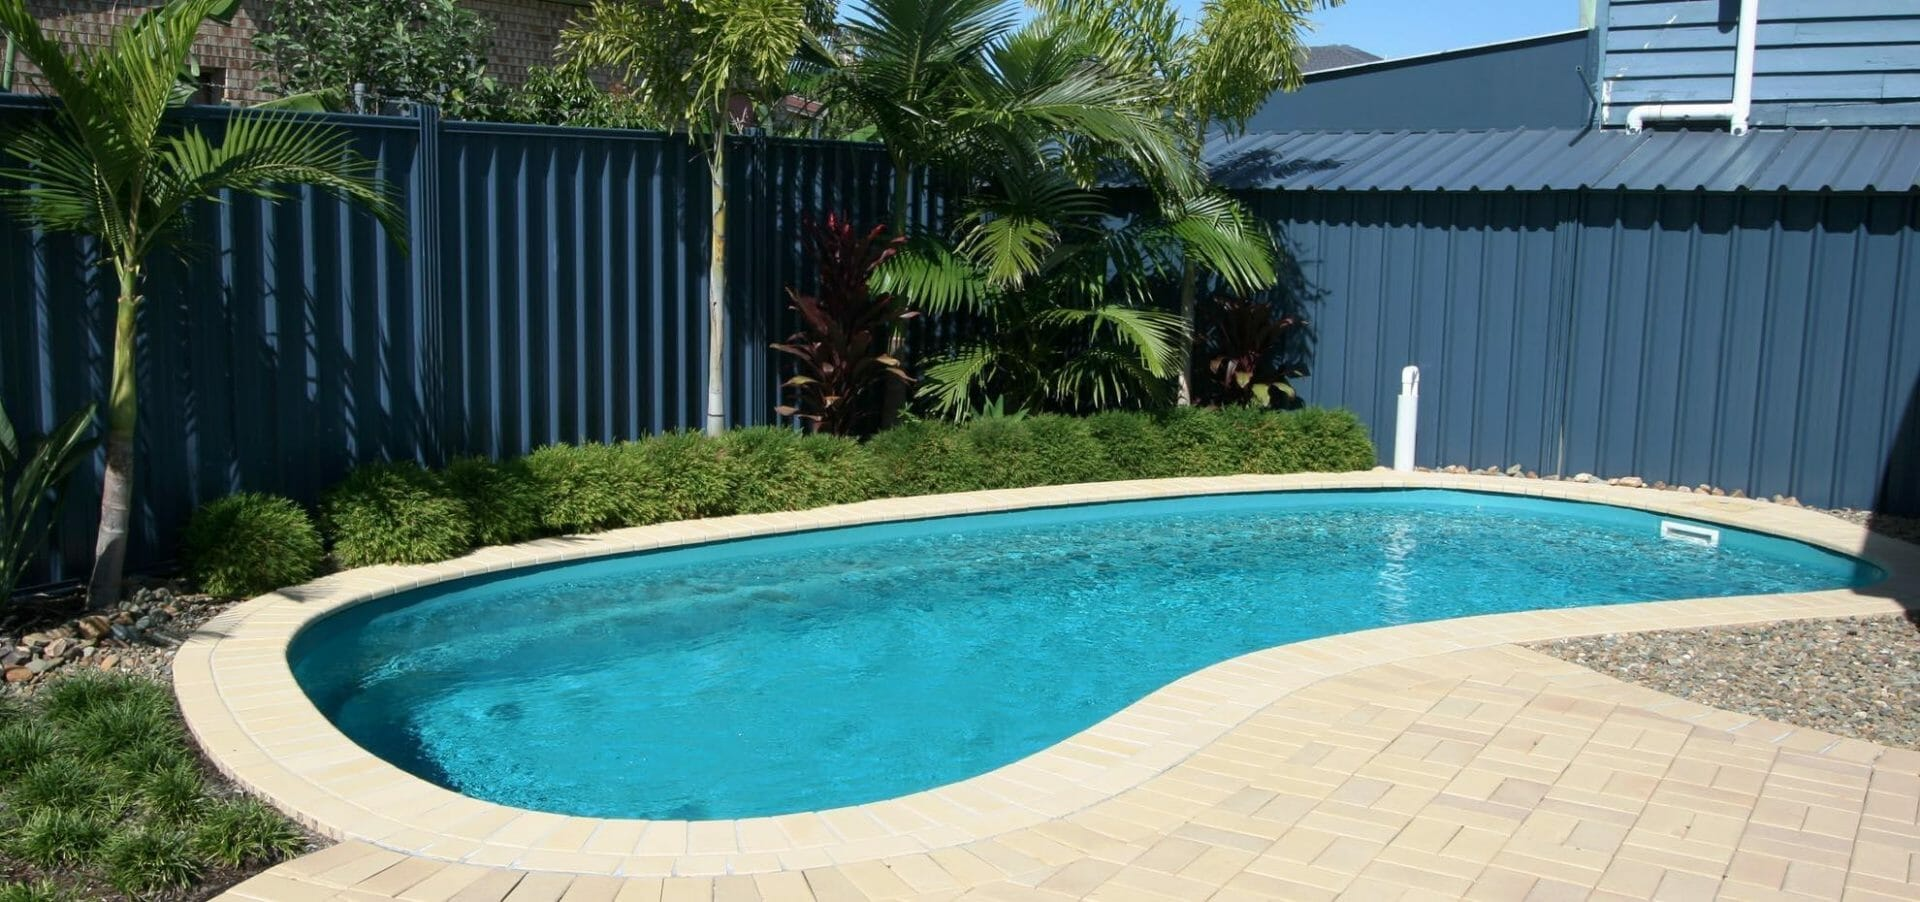 Tuscany Fiberglass Pool with interlocking by Leisure Pools